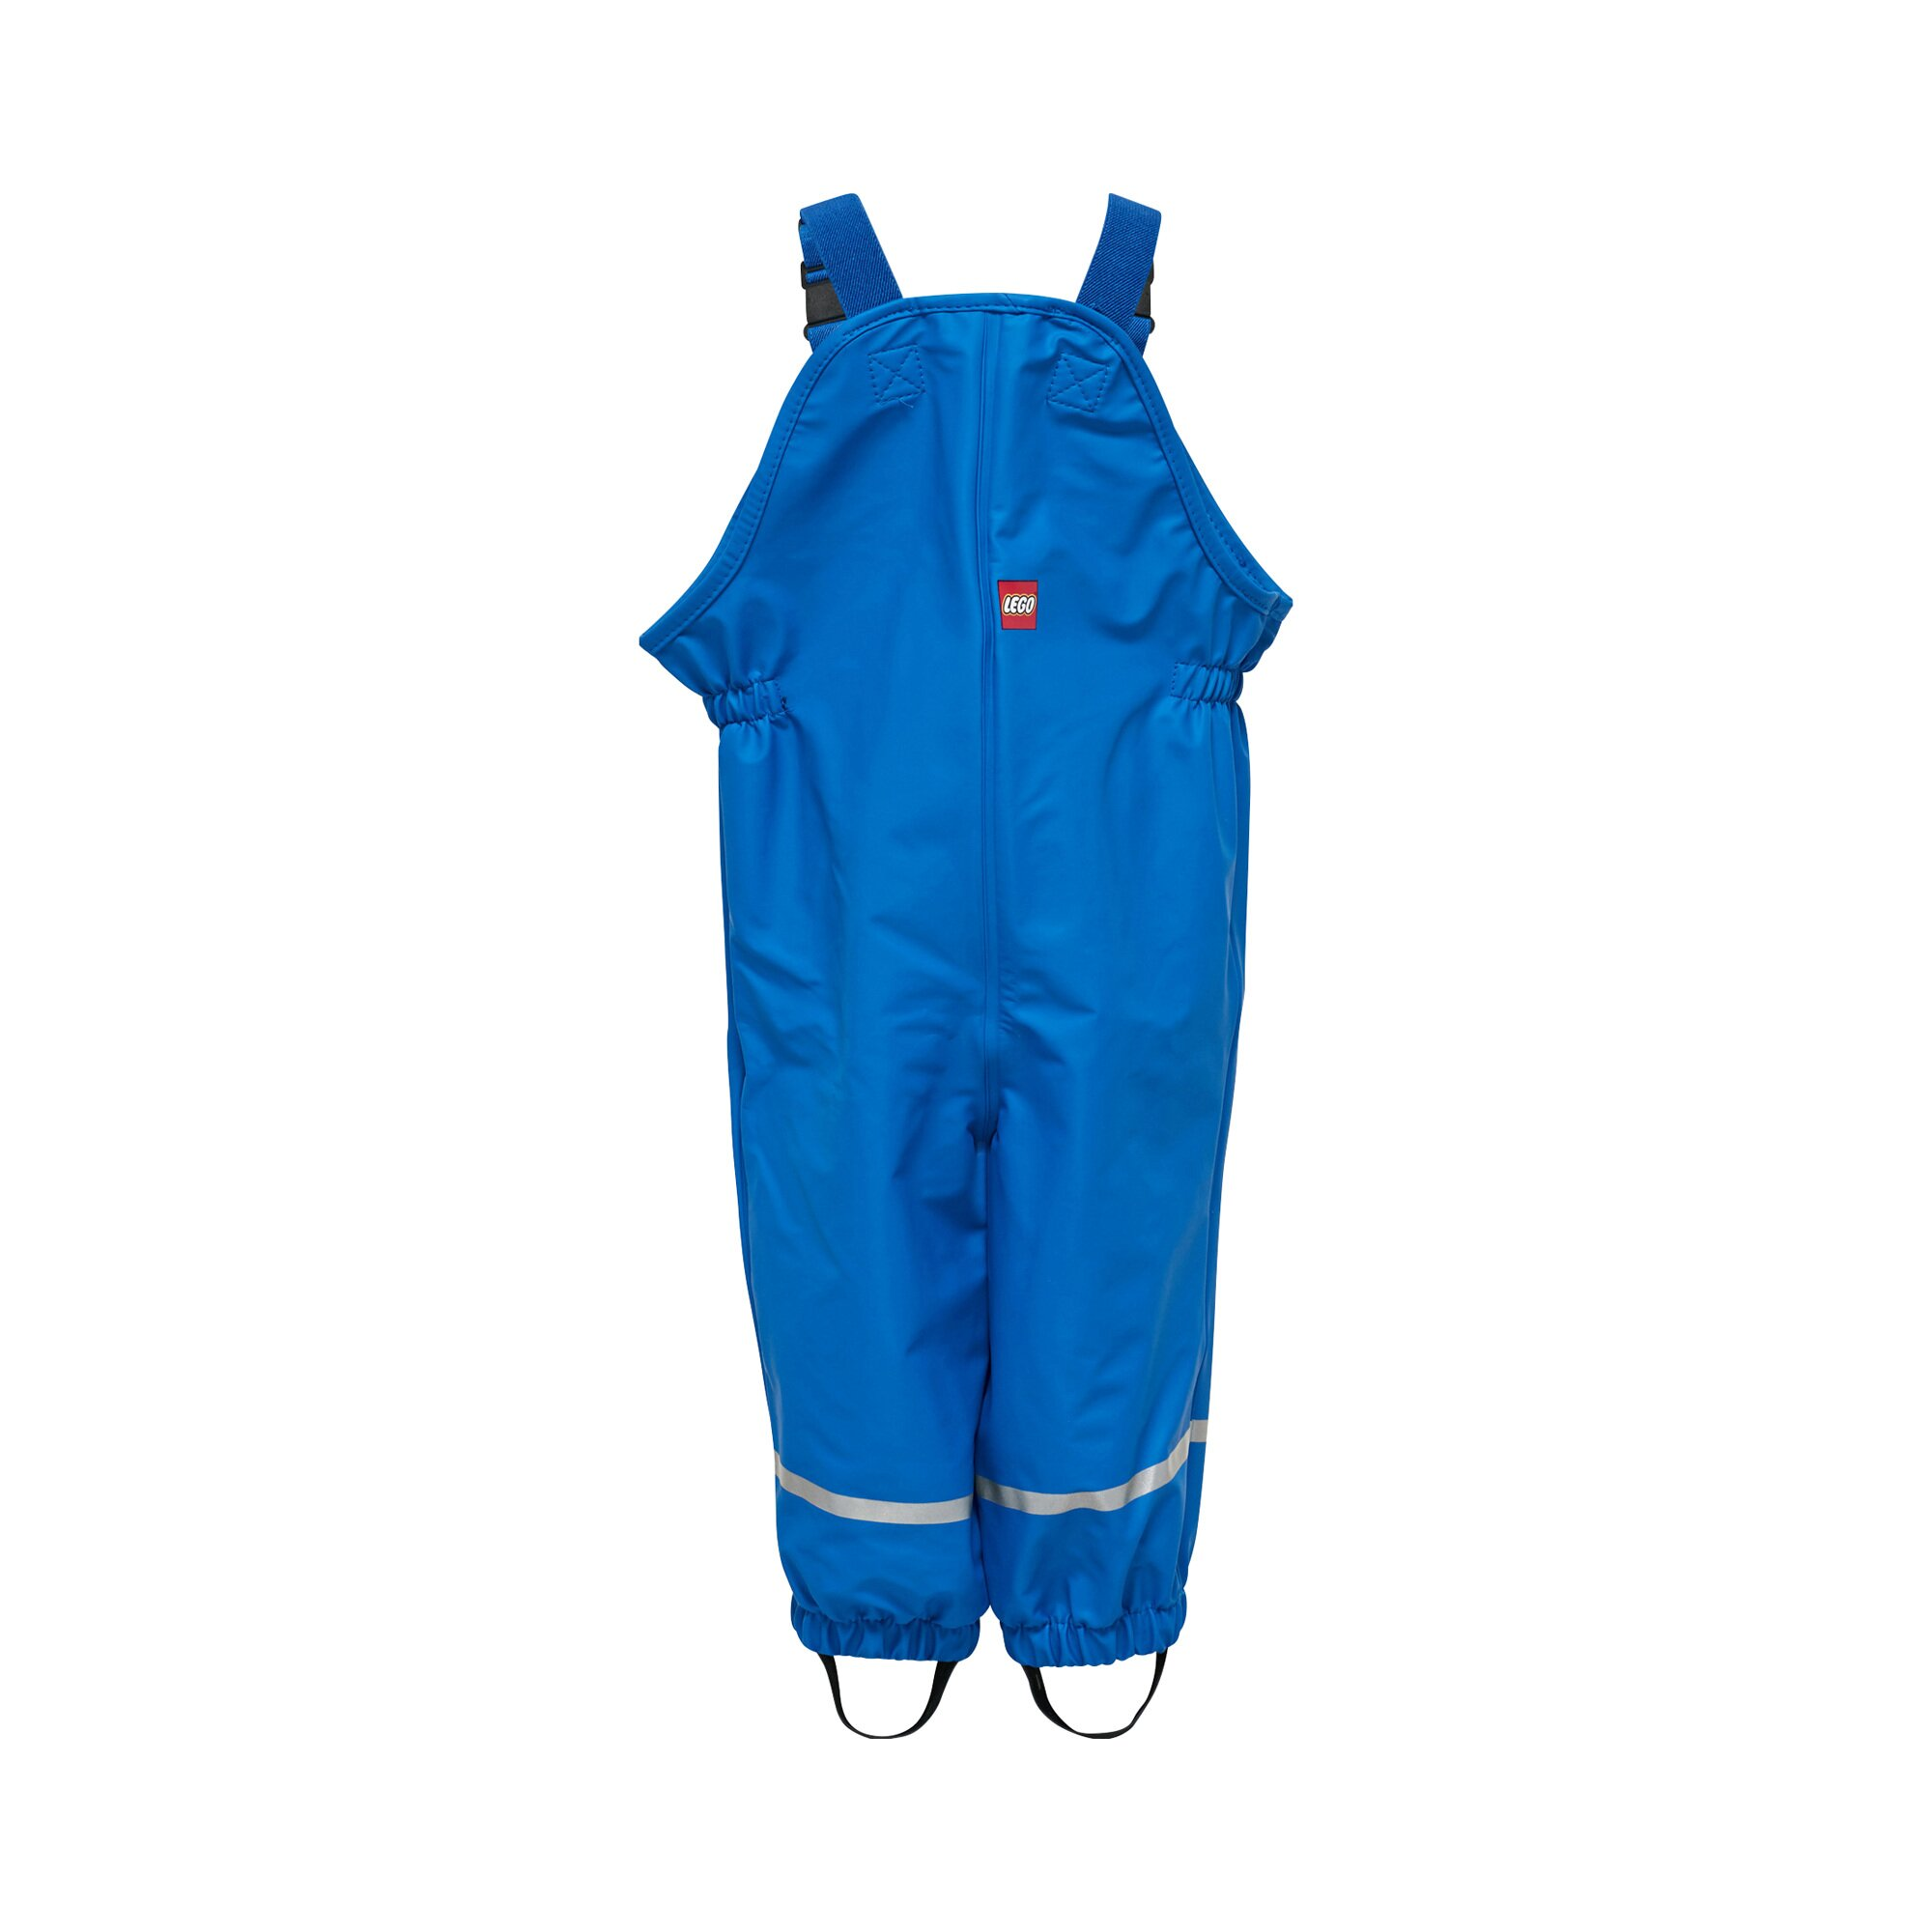 lego-wear-regenhose-power